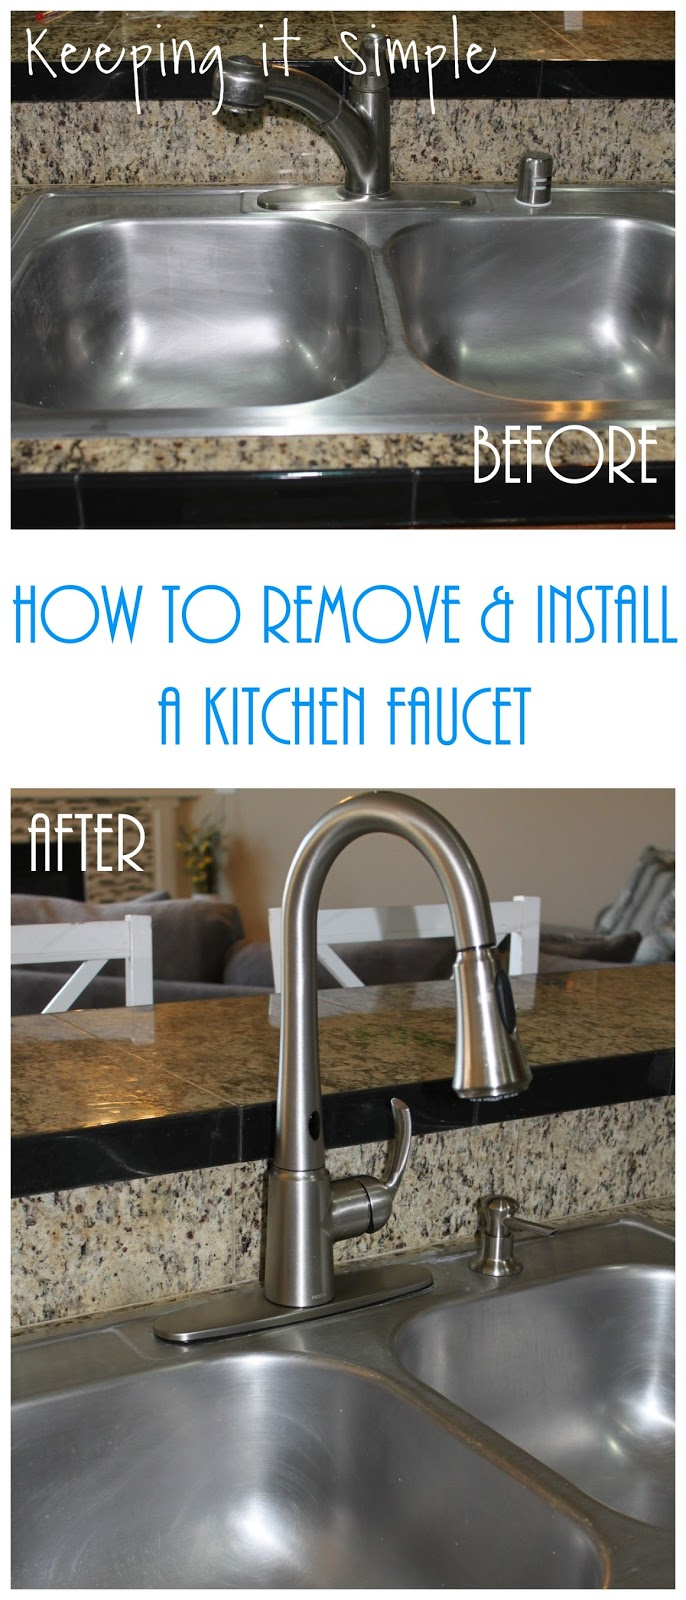 How to Remove and Install a Kitchen Moen Faucet • Keeping it Simple